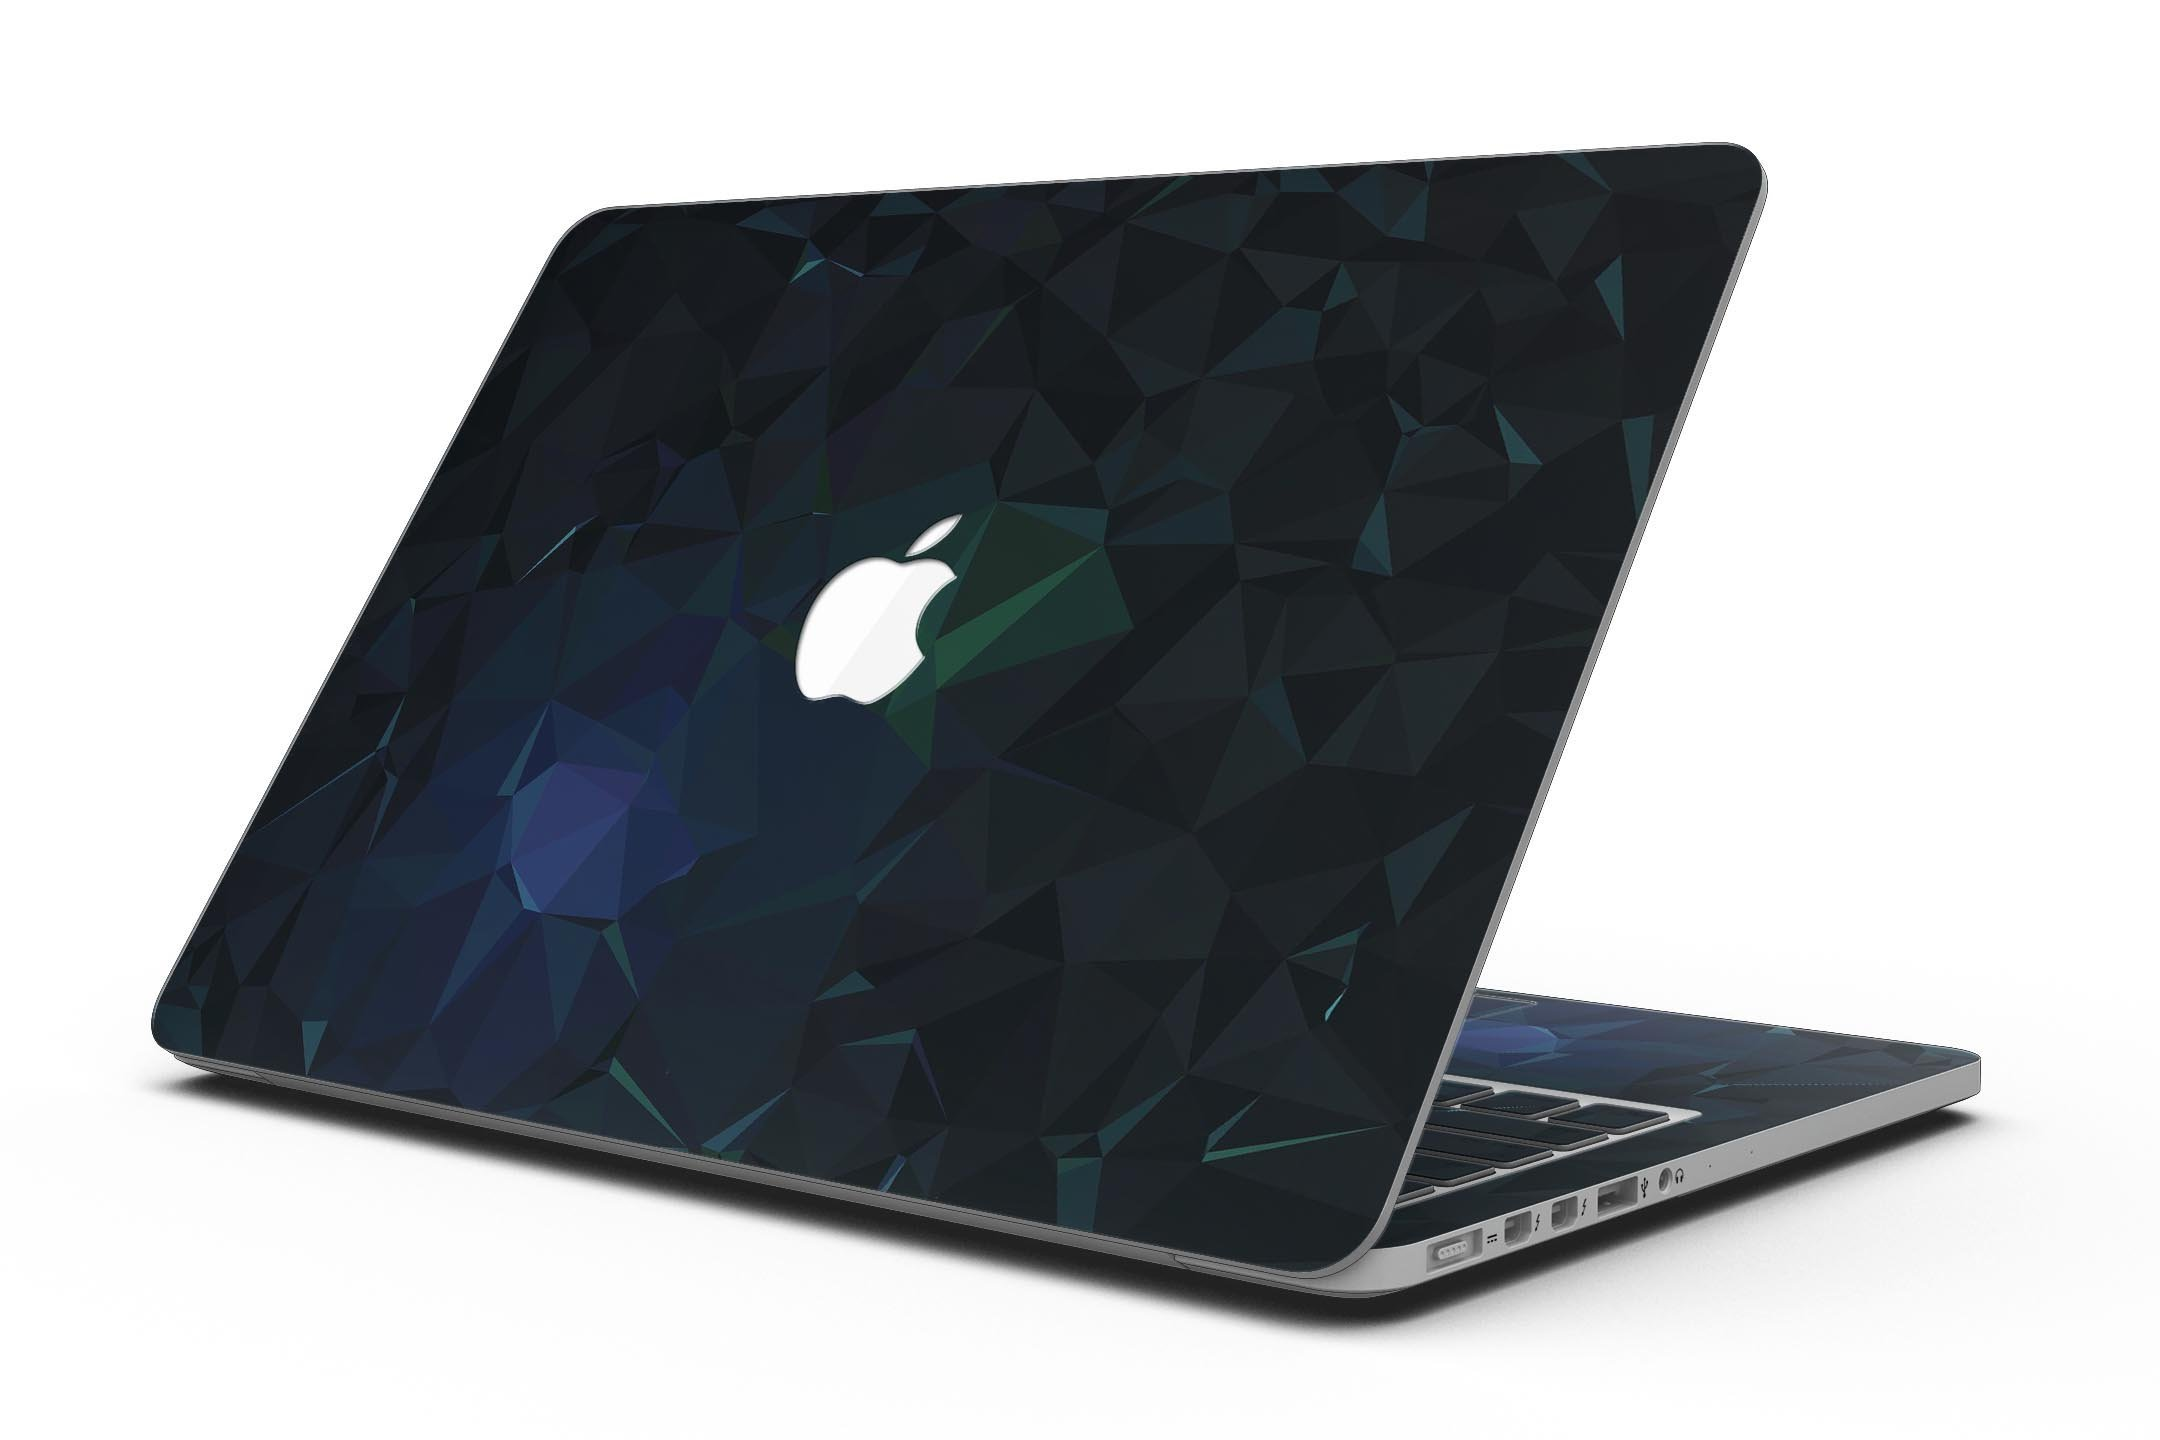 Abstract Dark Blue Geometric Shapes - MacBook Pro with Retina Display Full-Coverage Skin Kit